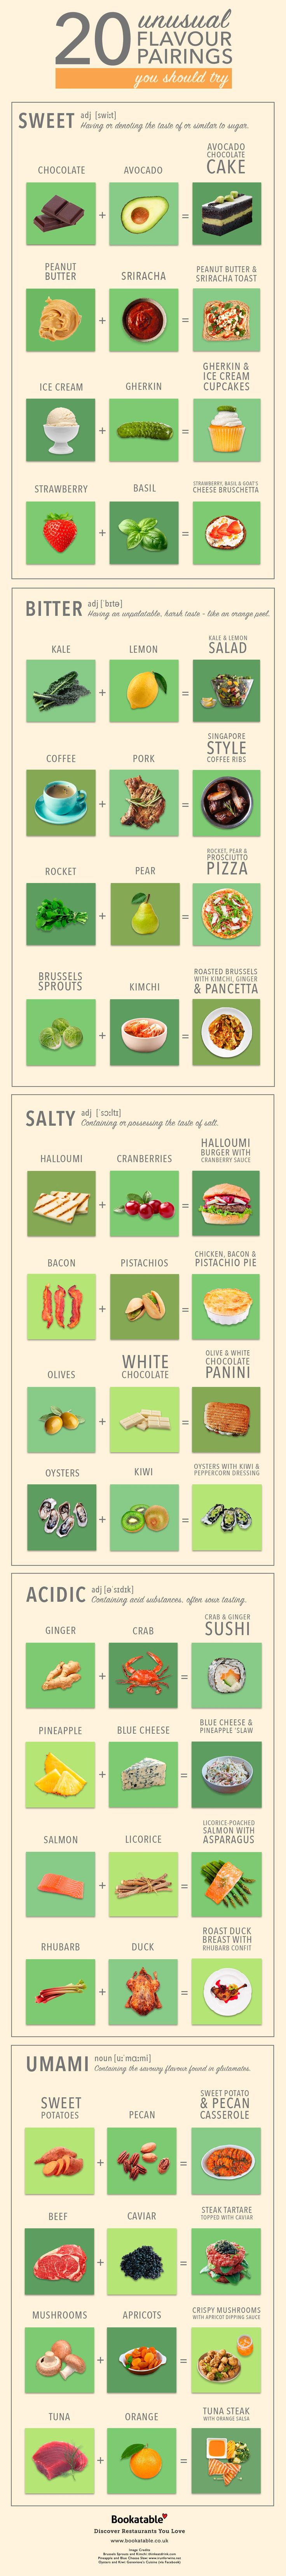 20 Weird But Tasty Food Pairings Worth A Try